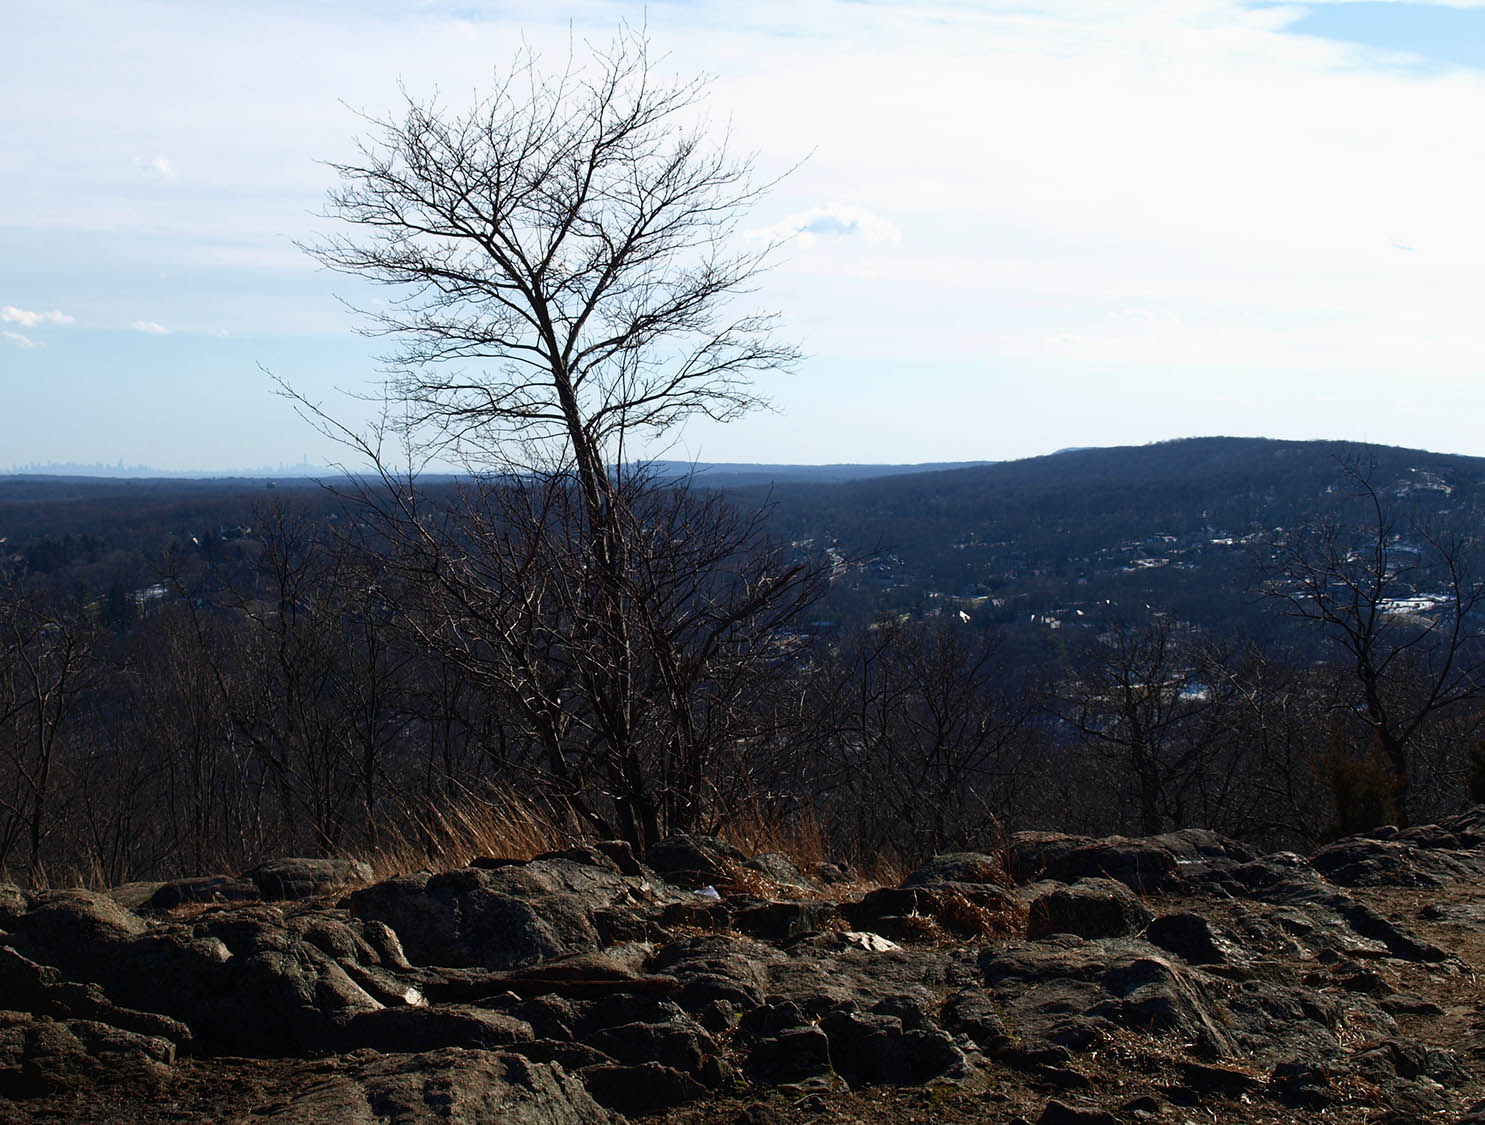 Skyline From Ramapo Valley County Reservation